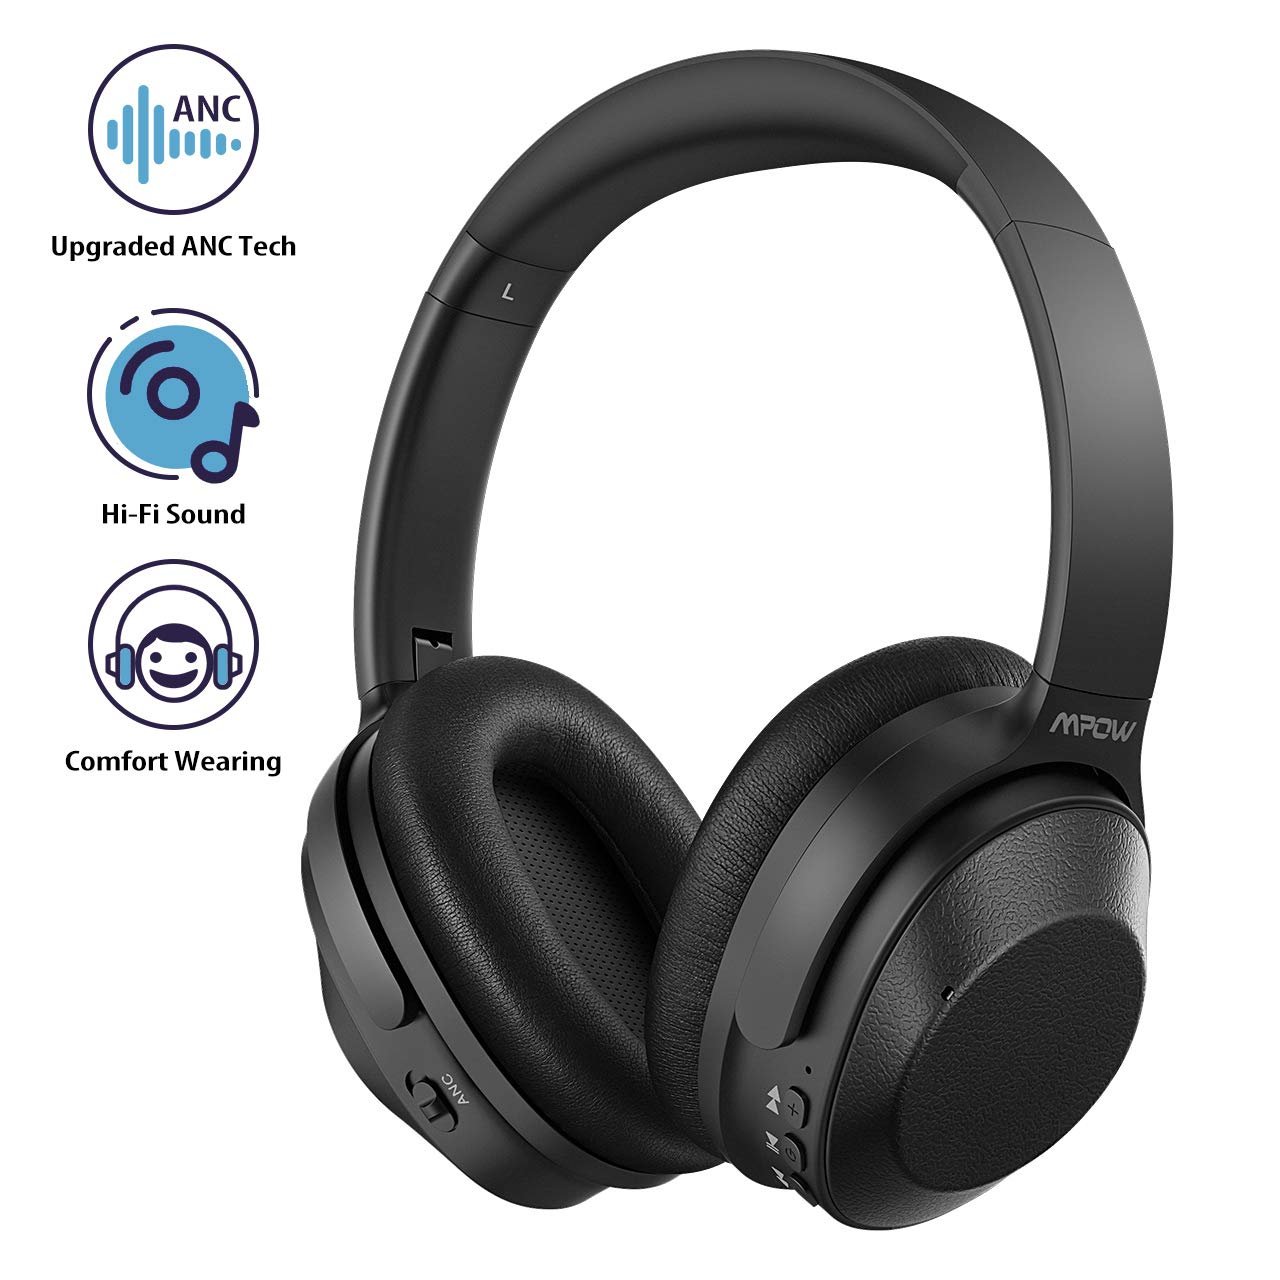 Mpow Active Noise Cancelling Headphones, Over-Ear Bluetooth Headphones with Hi-Fi Sound Deep Bass, CVC 6.0 Microphone, Stable Connection, 30H Playtime Wireless Headphones for Travel, Work, and Home